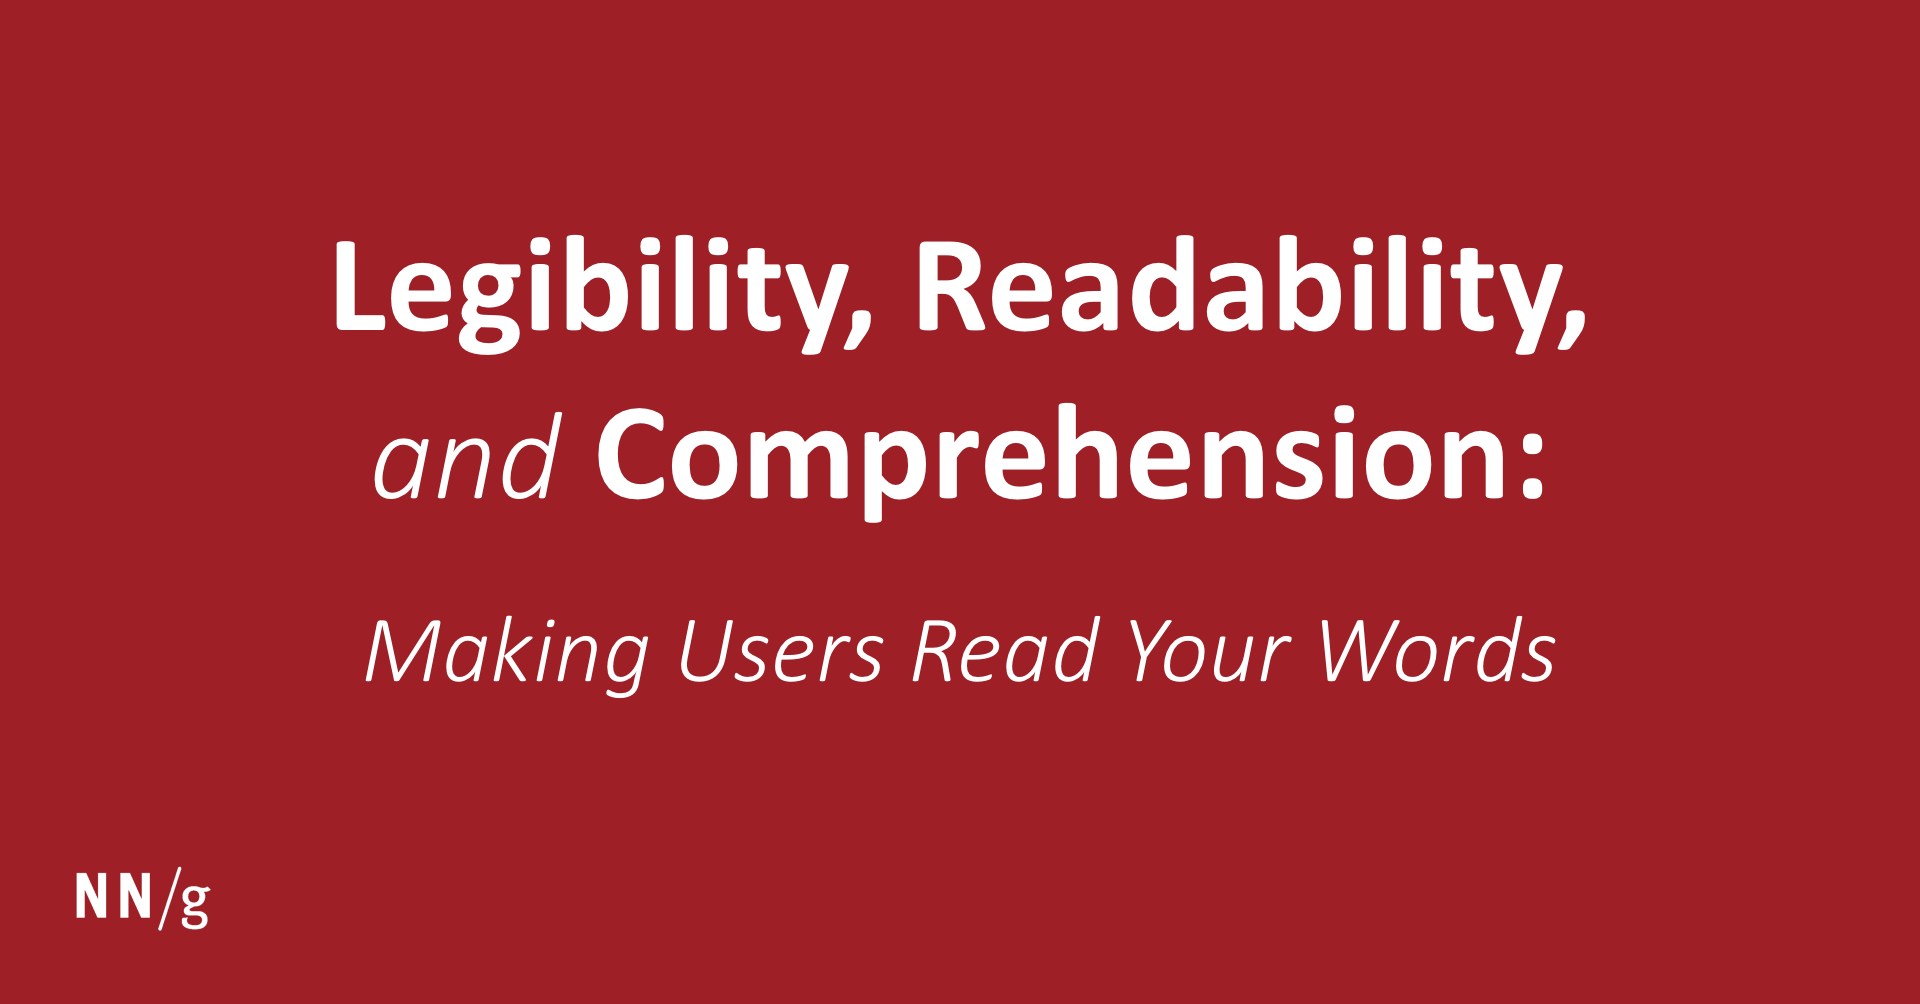 Legibility, Readability, and Comprehension: Making Users Read Your Words